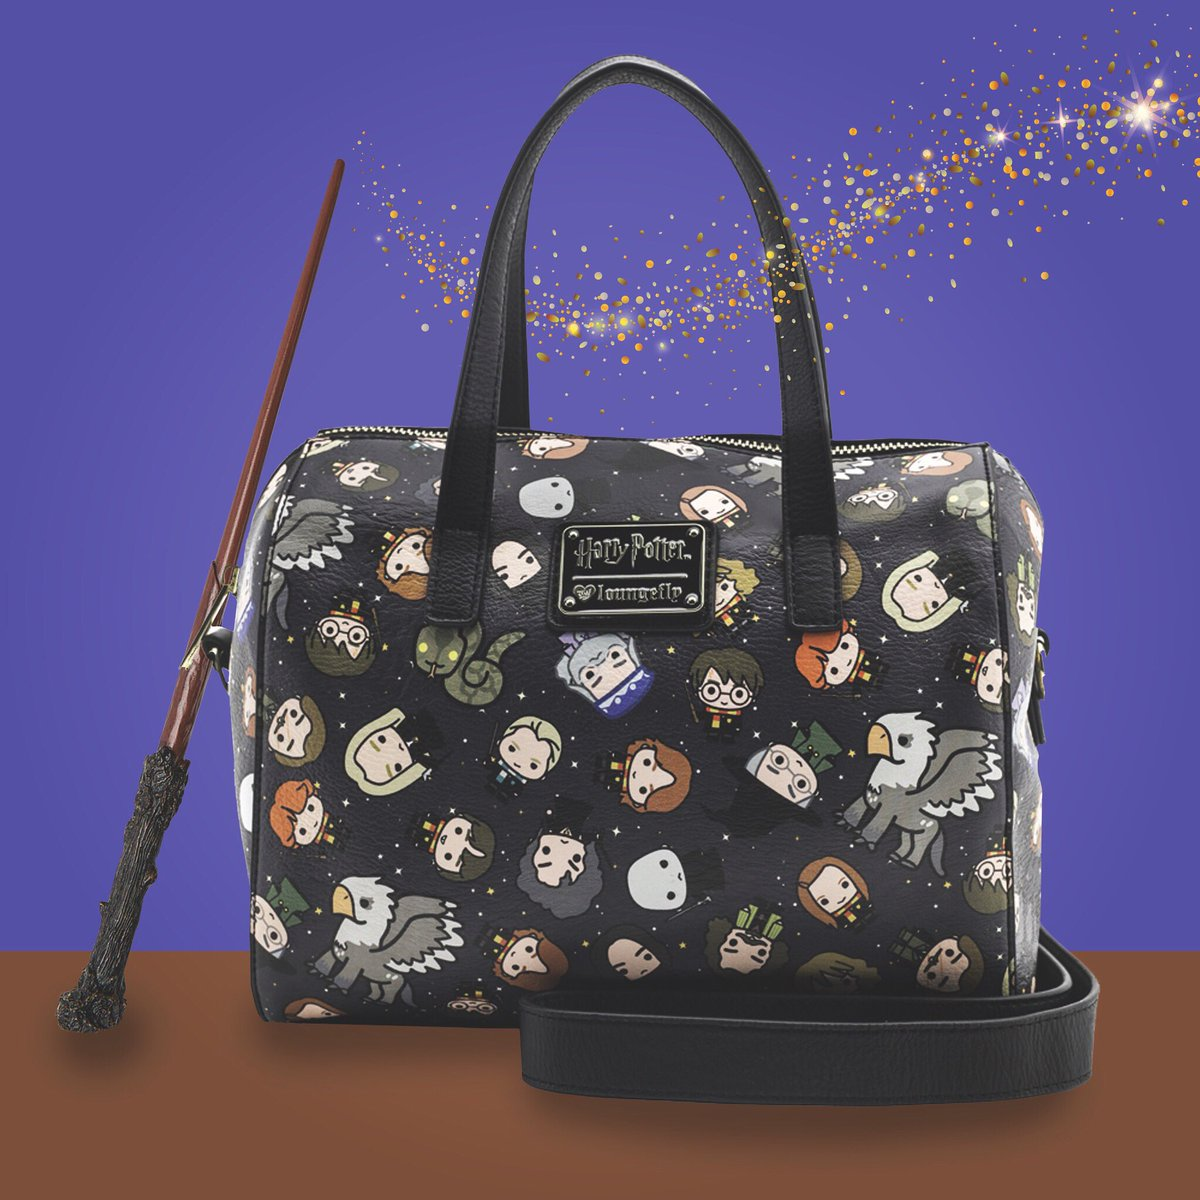 09b1047c3e9 This magical bag is now available on http   Loungefly.